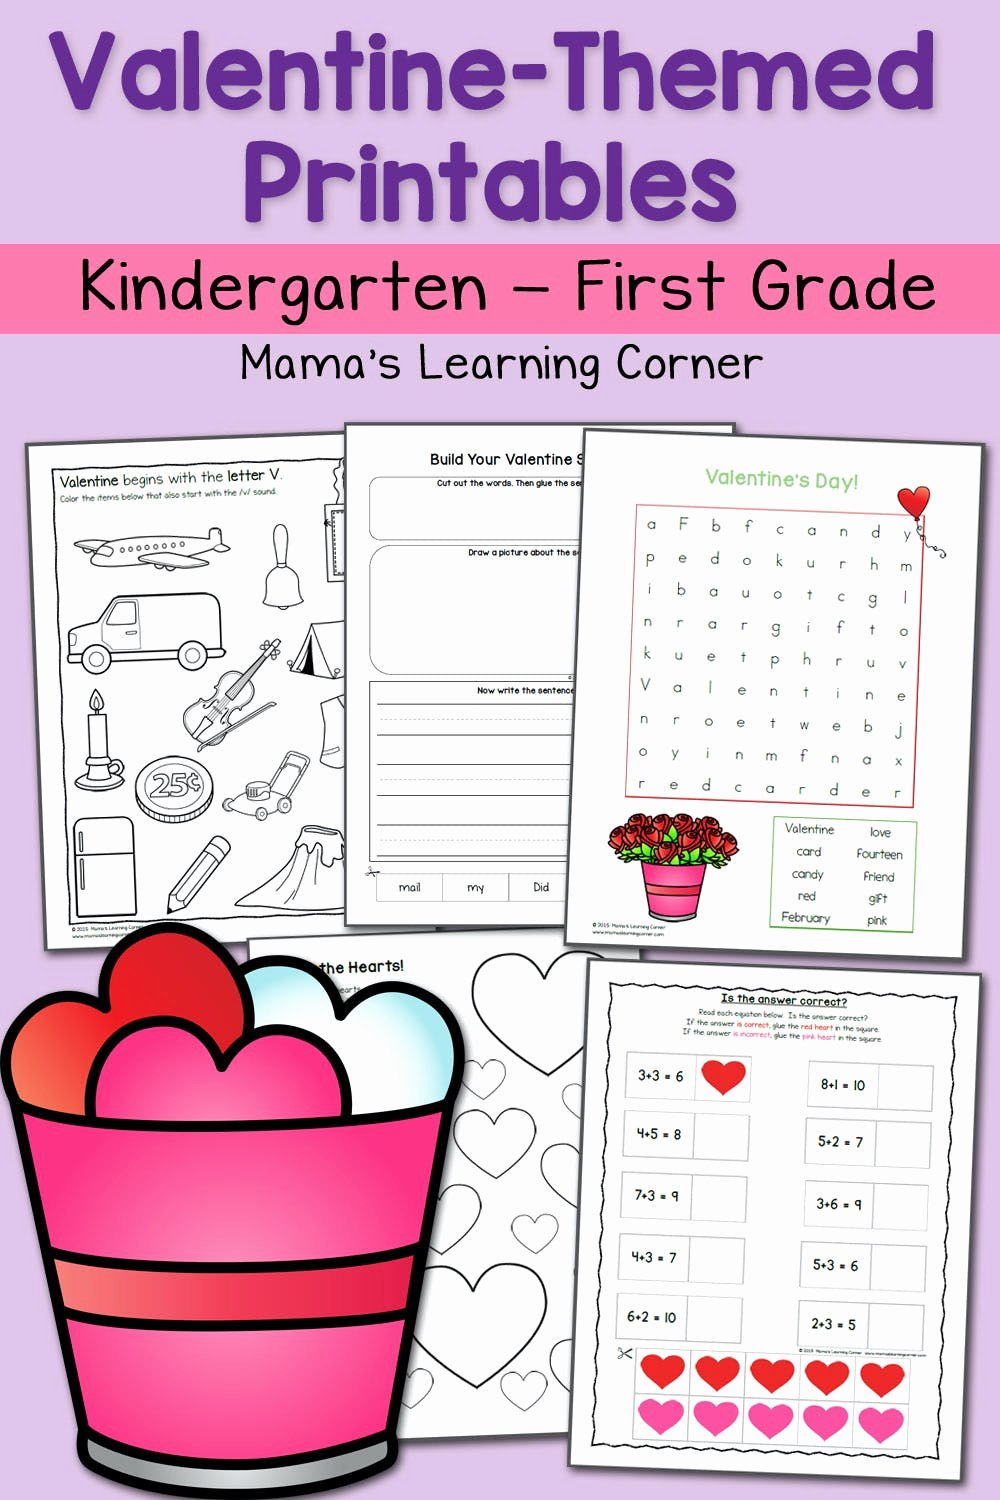 Valentine Worksheets for Preschoolers Fresh Valentine Worksheets for Kindergarten and First Grade